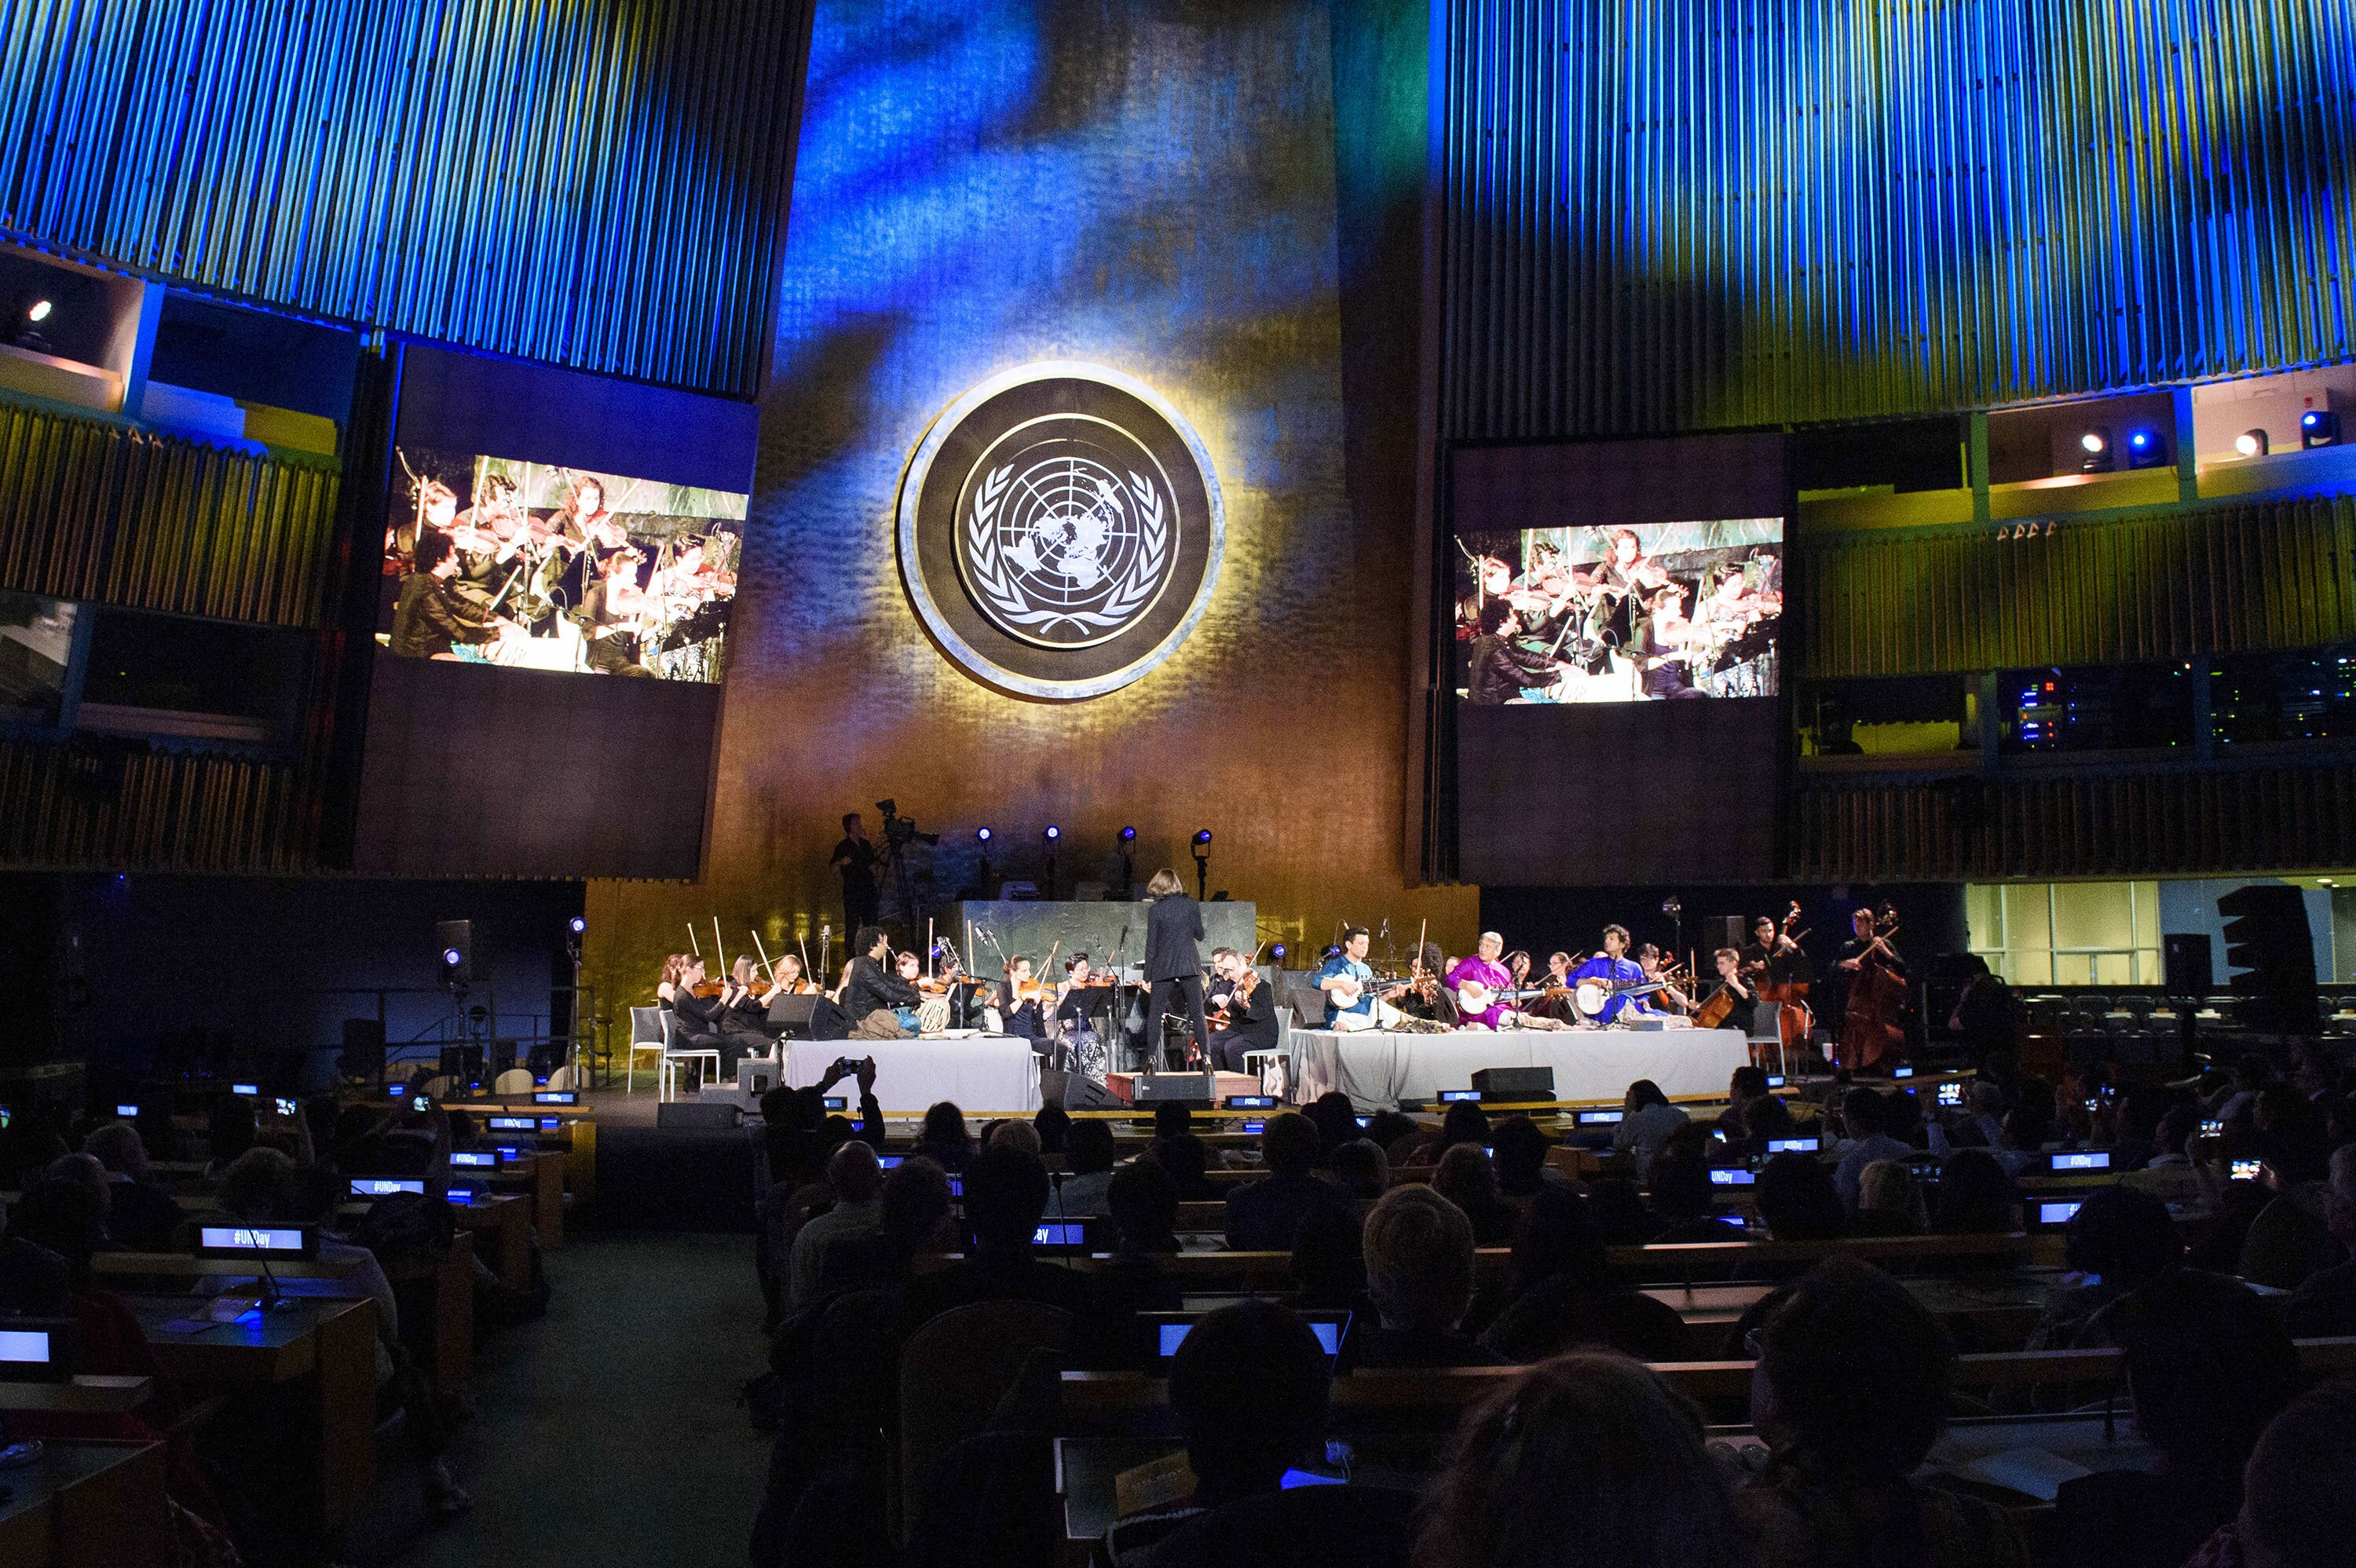 The Refugee Orchestra Project performing at the United Nations in 2018